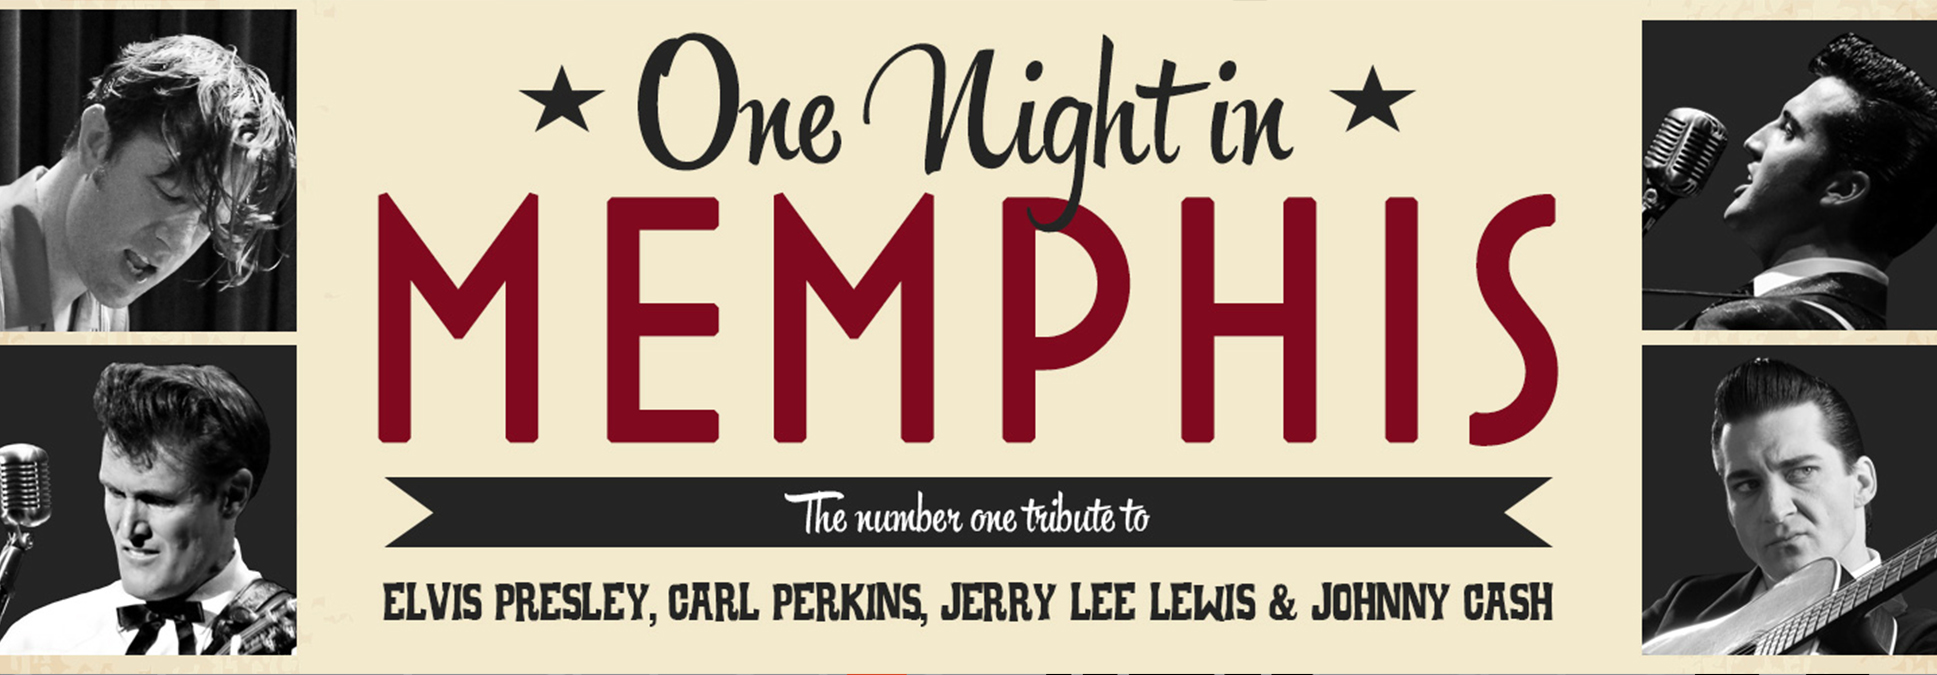 One Night In Memphis at the Marcus Center in Milwaukee